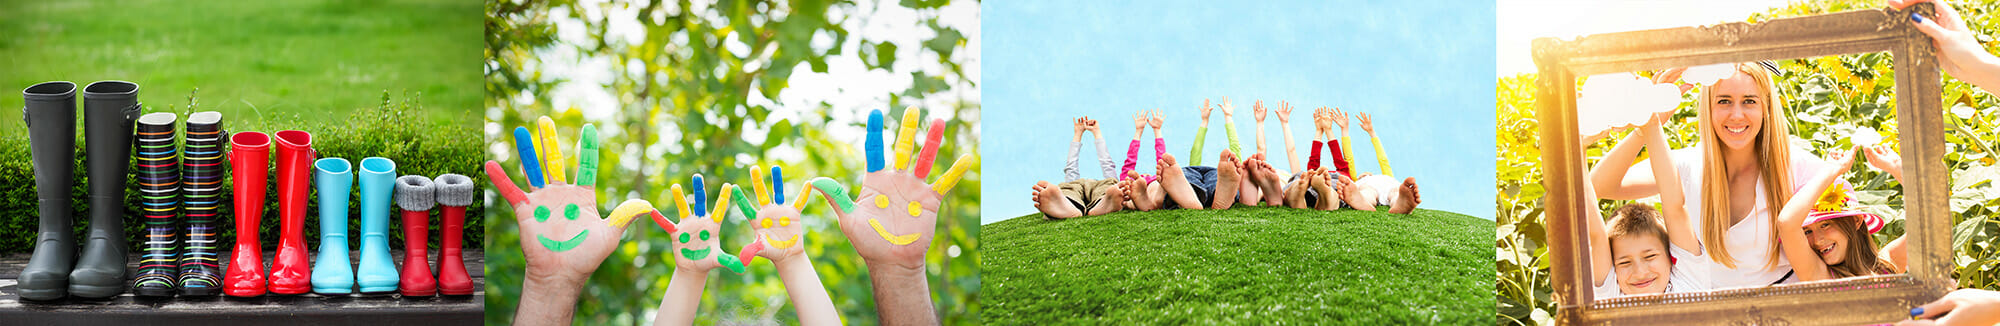 wellies family hand painting red blue yellow fingers feet portrait iphotography